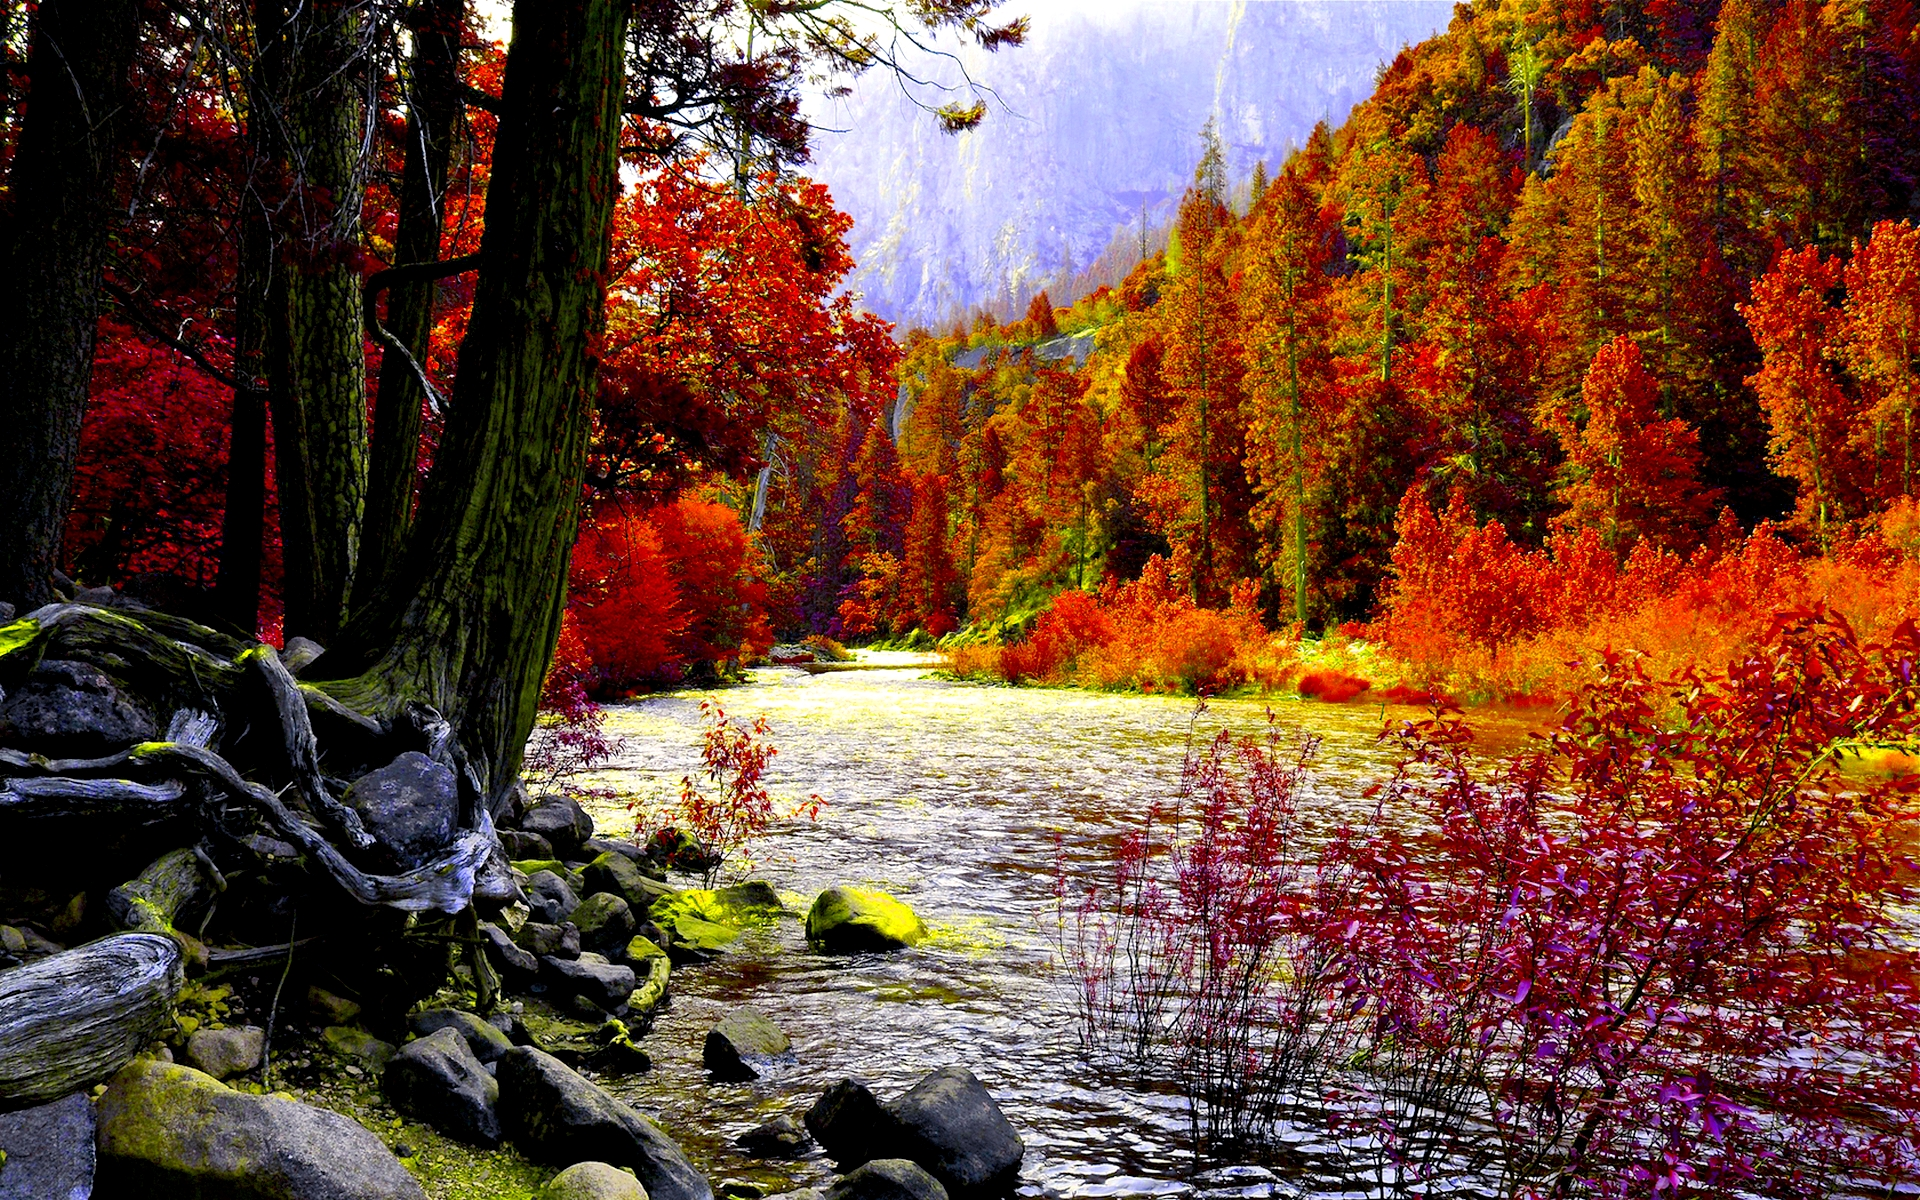 Fall Harvest Wallpaper Awesome Autumn River Background Wallpaper Nature And